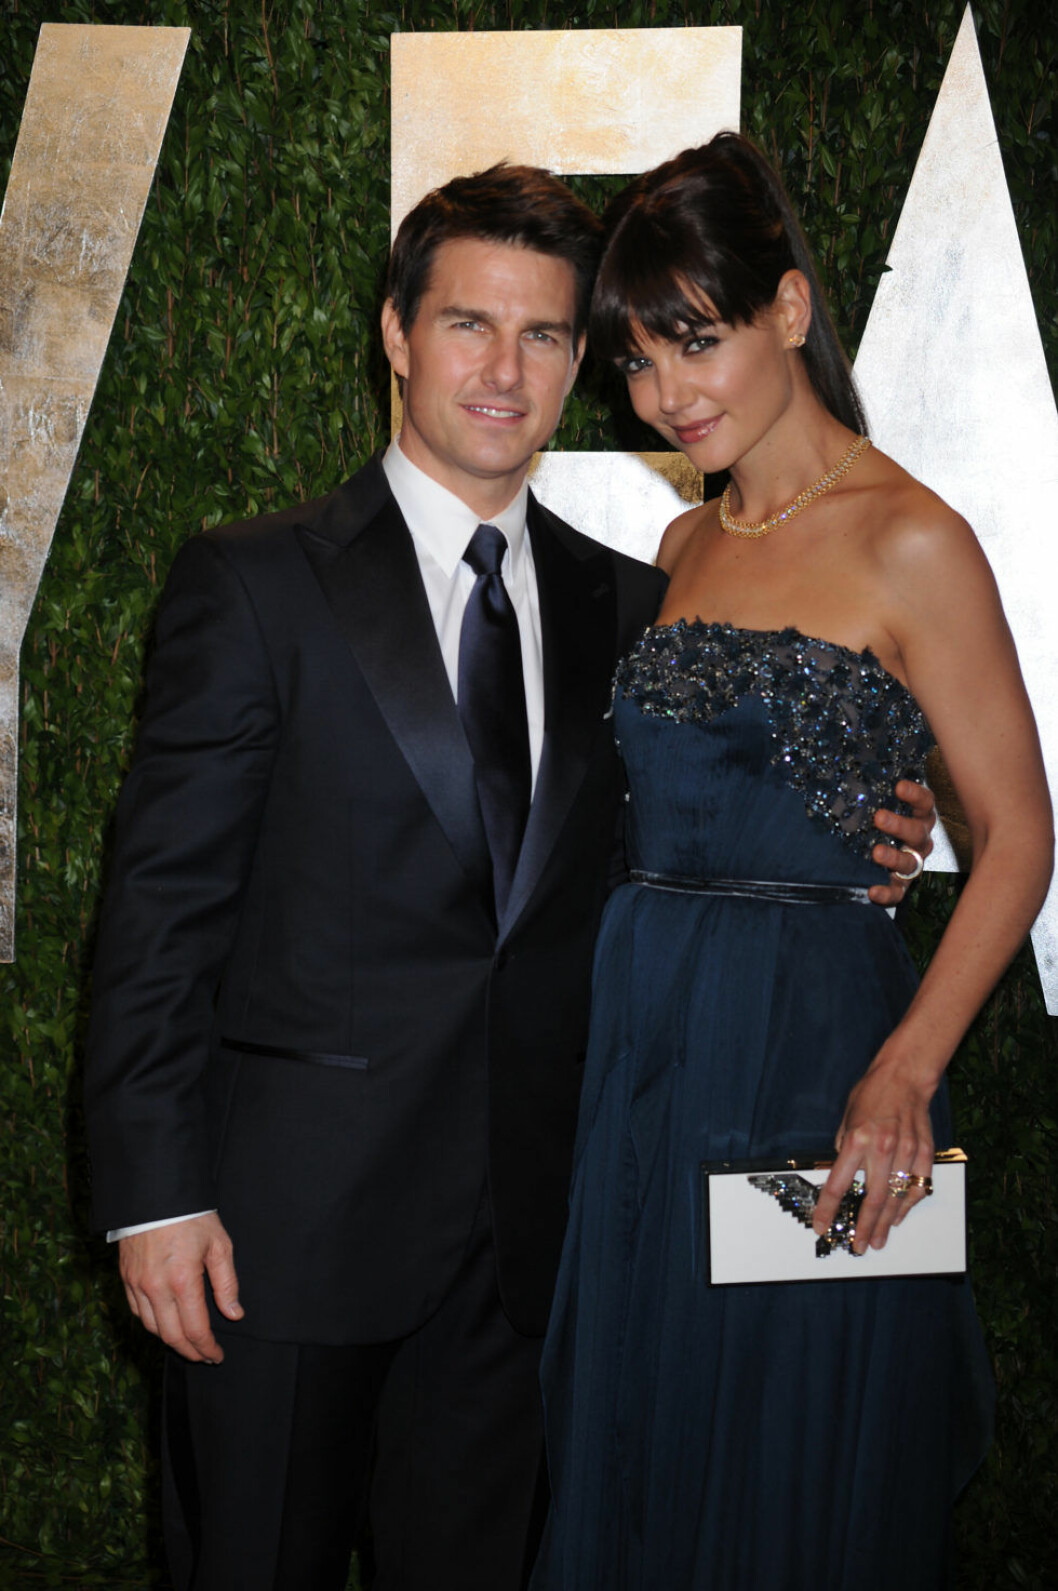 Tom Cruise and Katie Holmes attend the 2012 Vanity Fair Oscar Party hosted by Graydon Carter